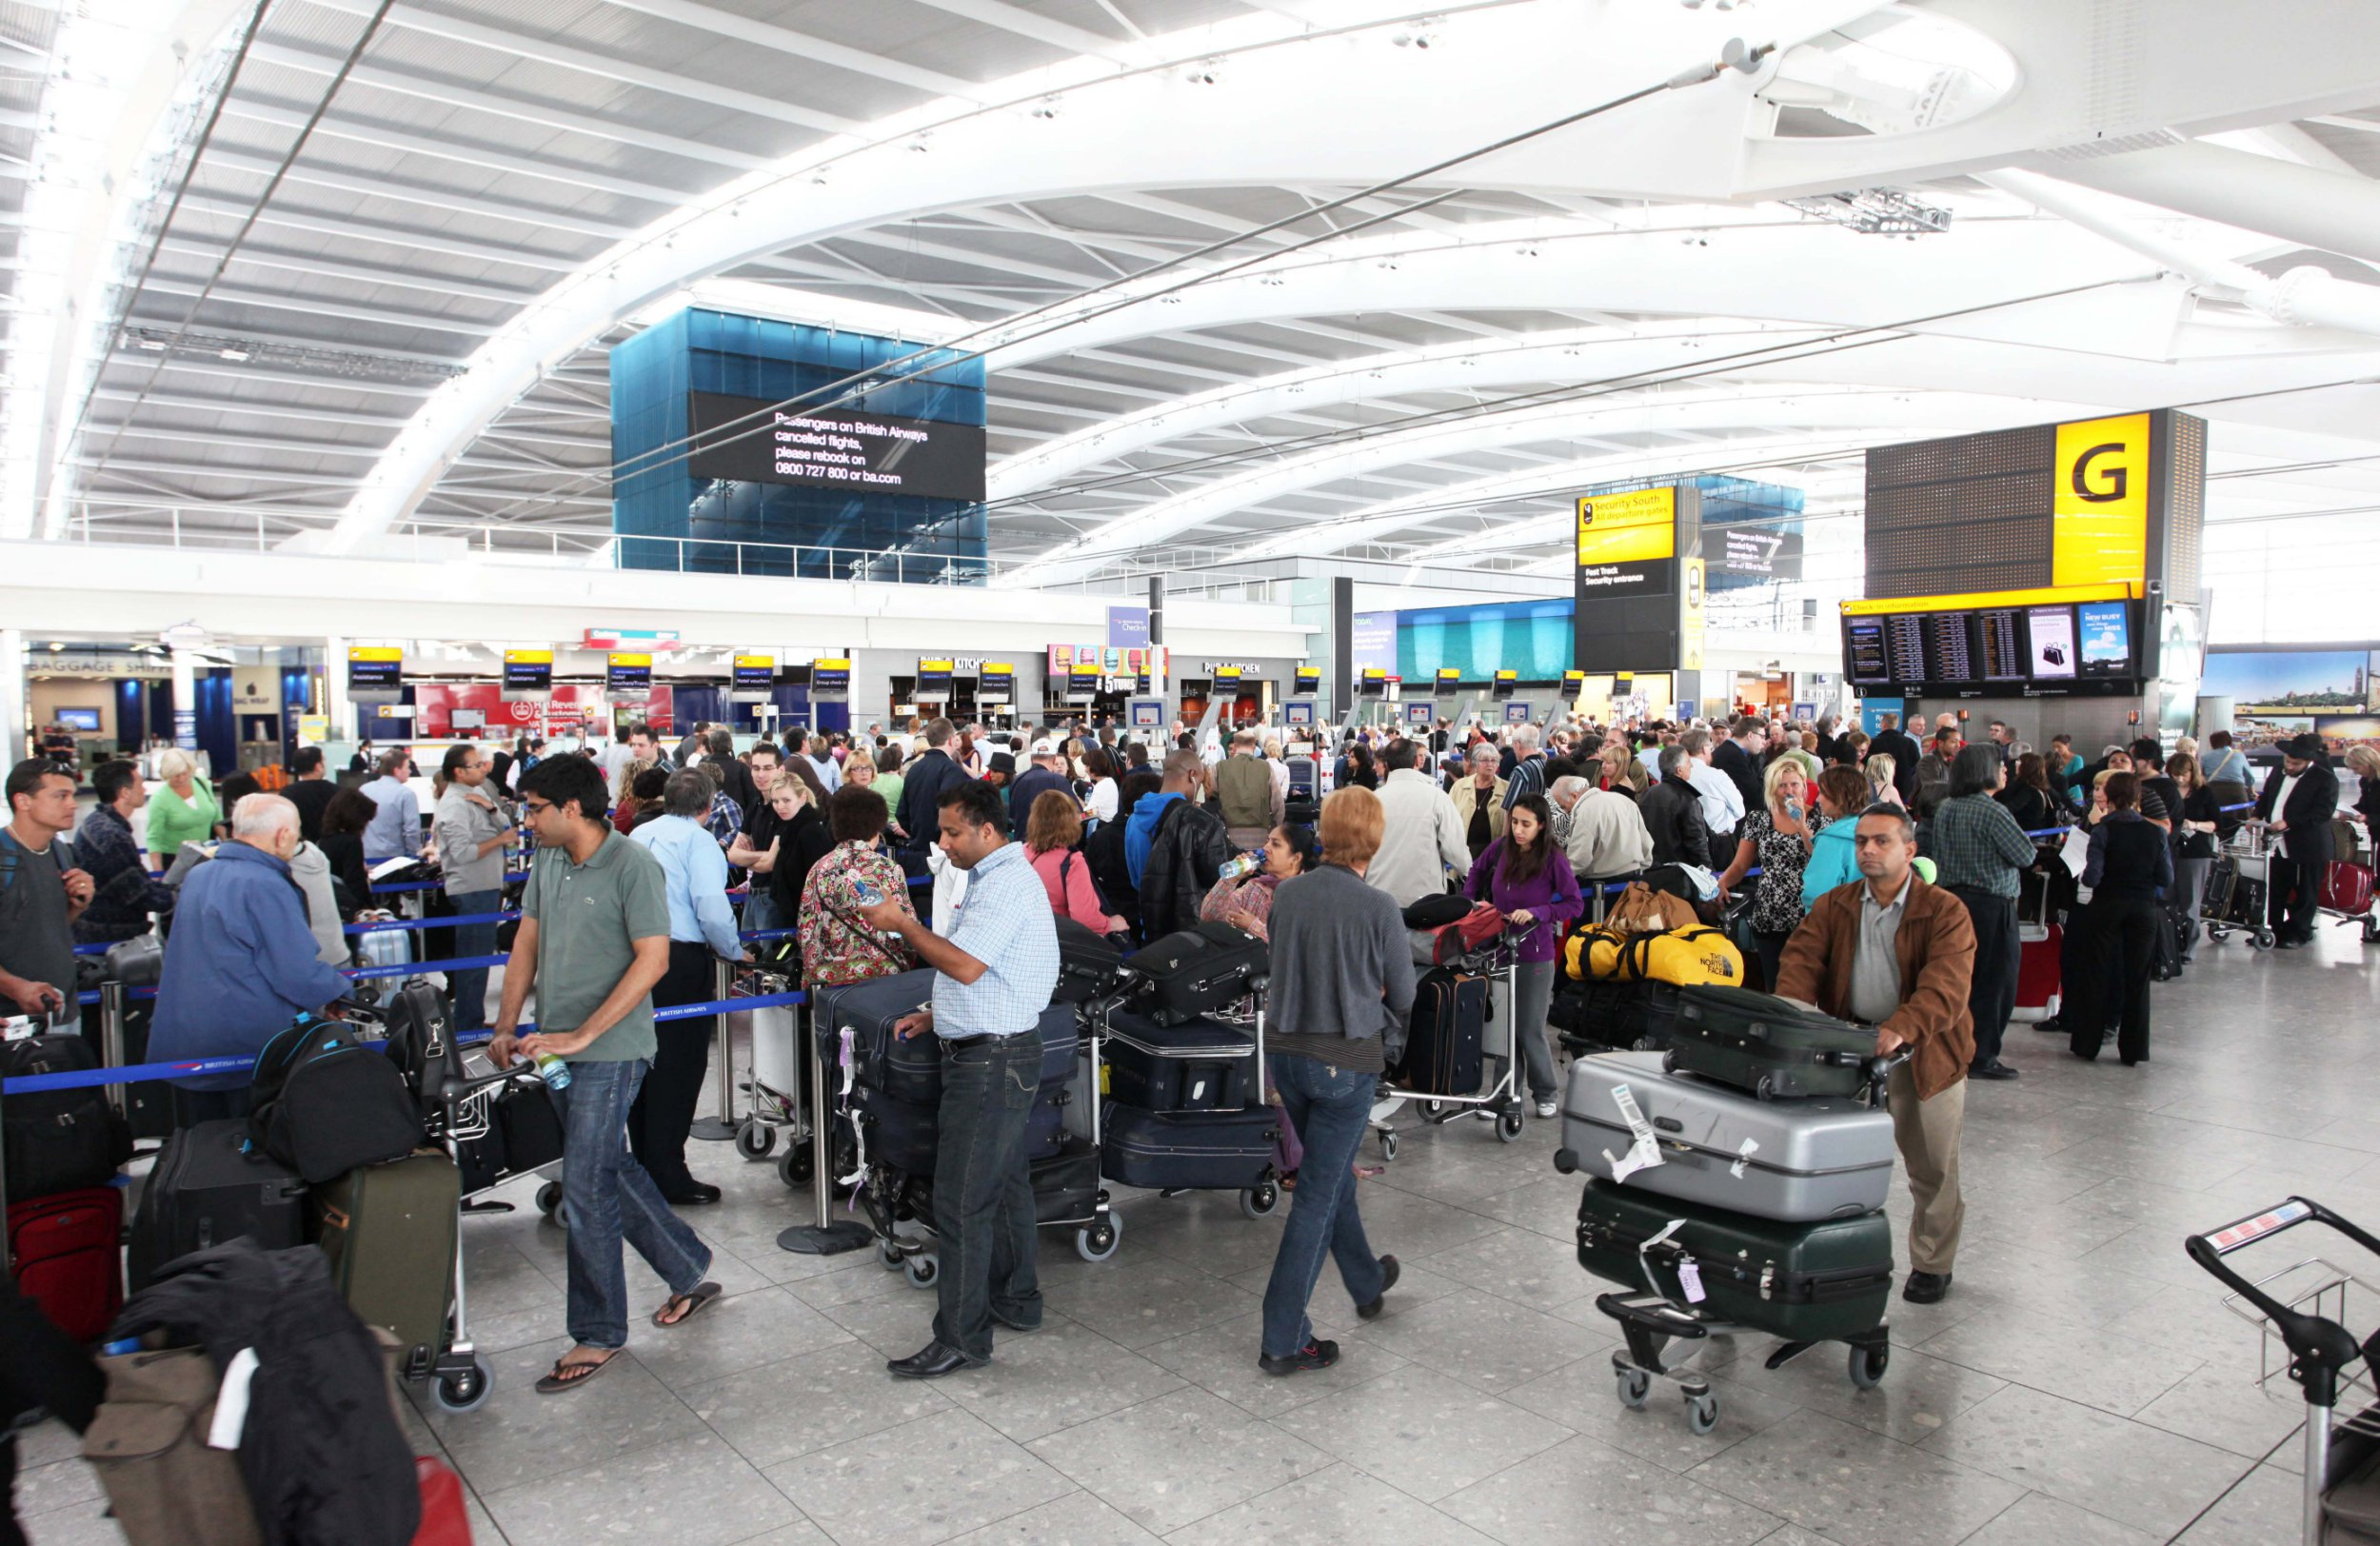 Passengers line up for information at Terminal 5 at Heathrow Airport in London, U.K., on Thursday, April 15, 2010. Airports in the U.K. and northern Europe shut down as a cloud of volcanic ash swept south from an eruption in Iceland, disrupting travel for thousands of people booked on flights with British Airways Plc and other carriers. Photographer: Chris Ratcliffe/Bloomberg via Getty Images